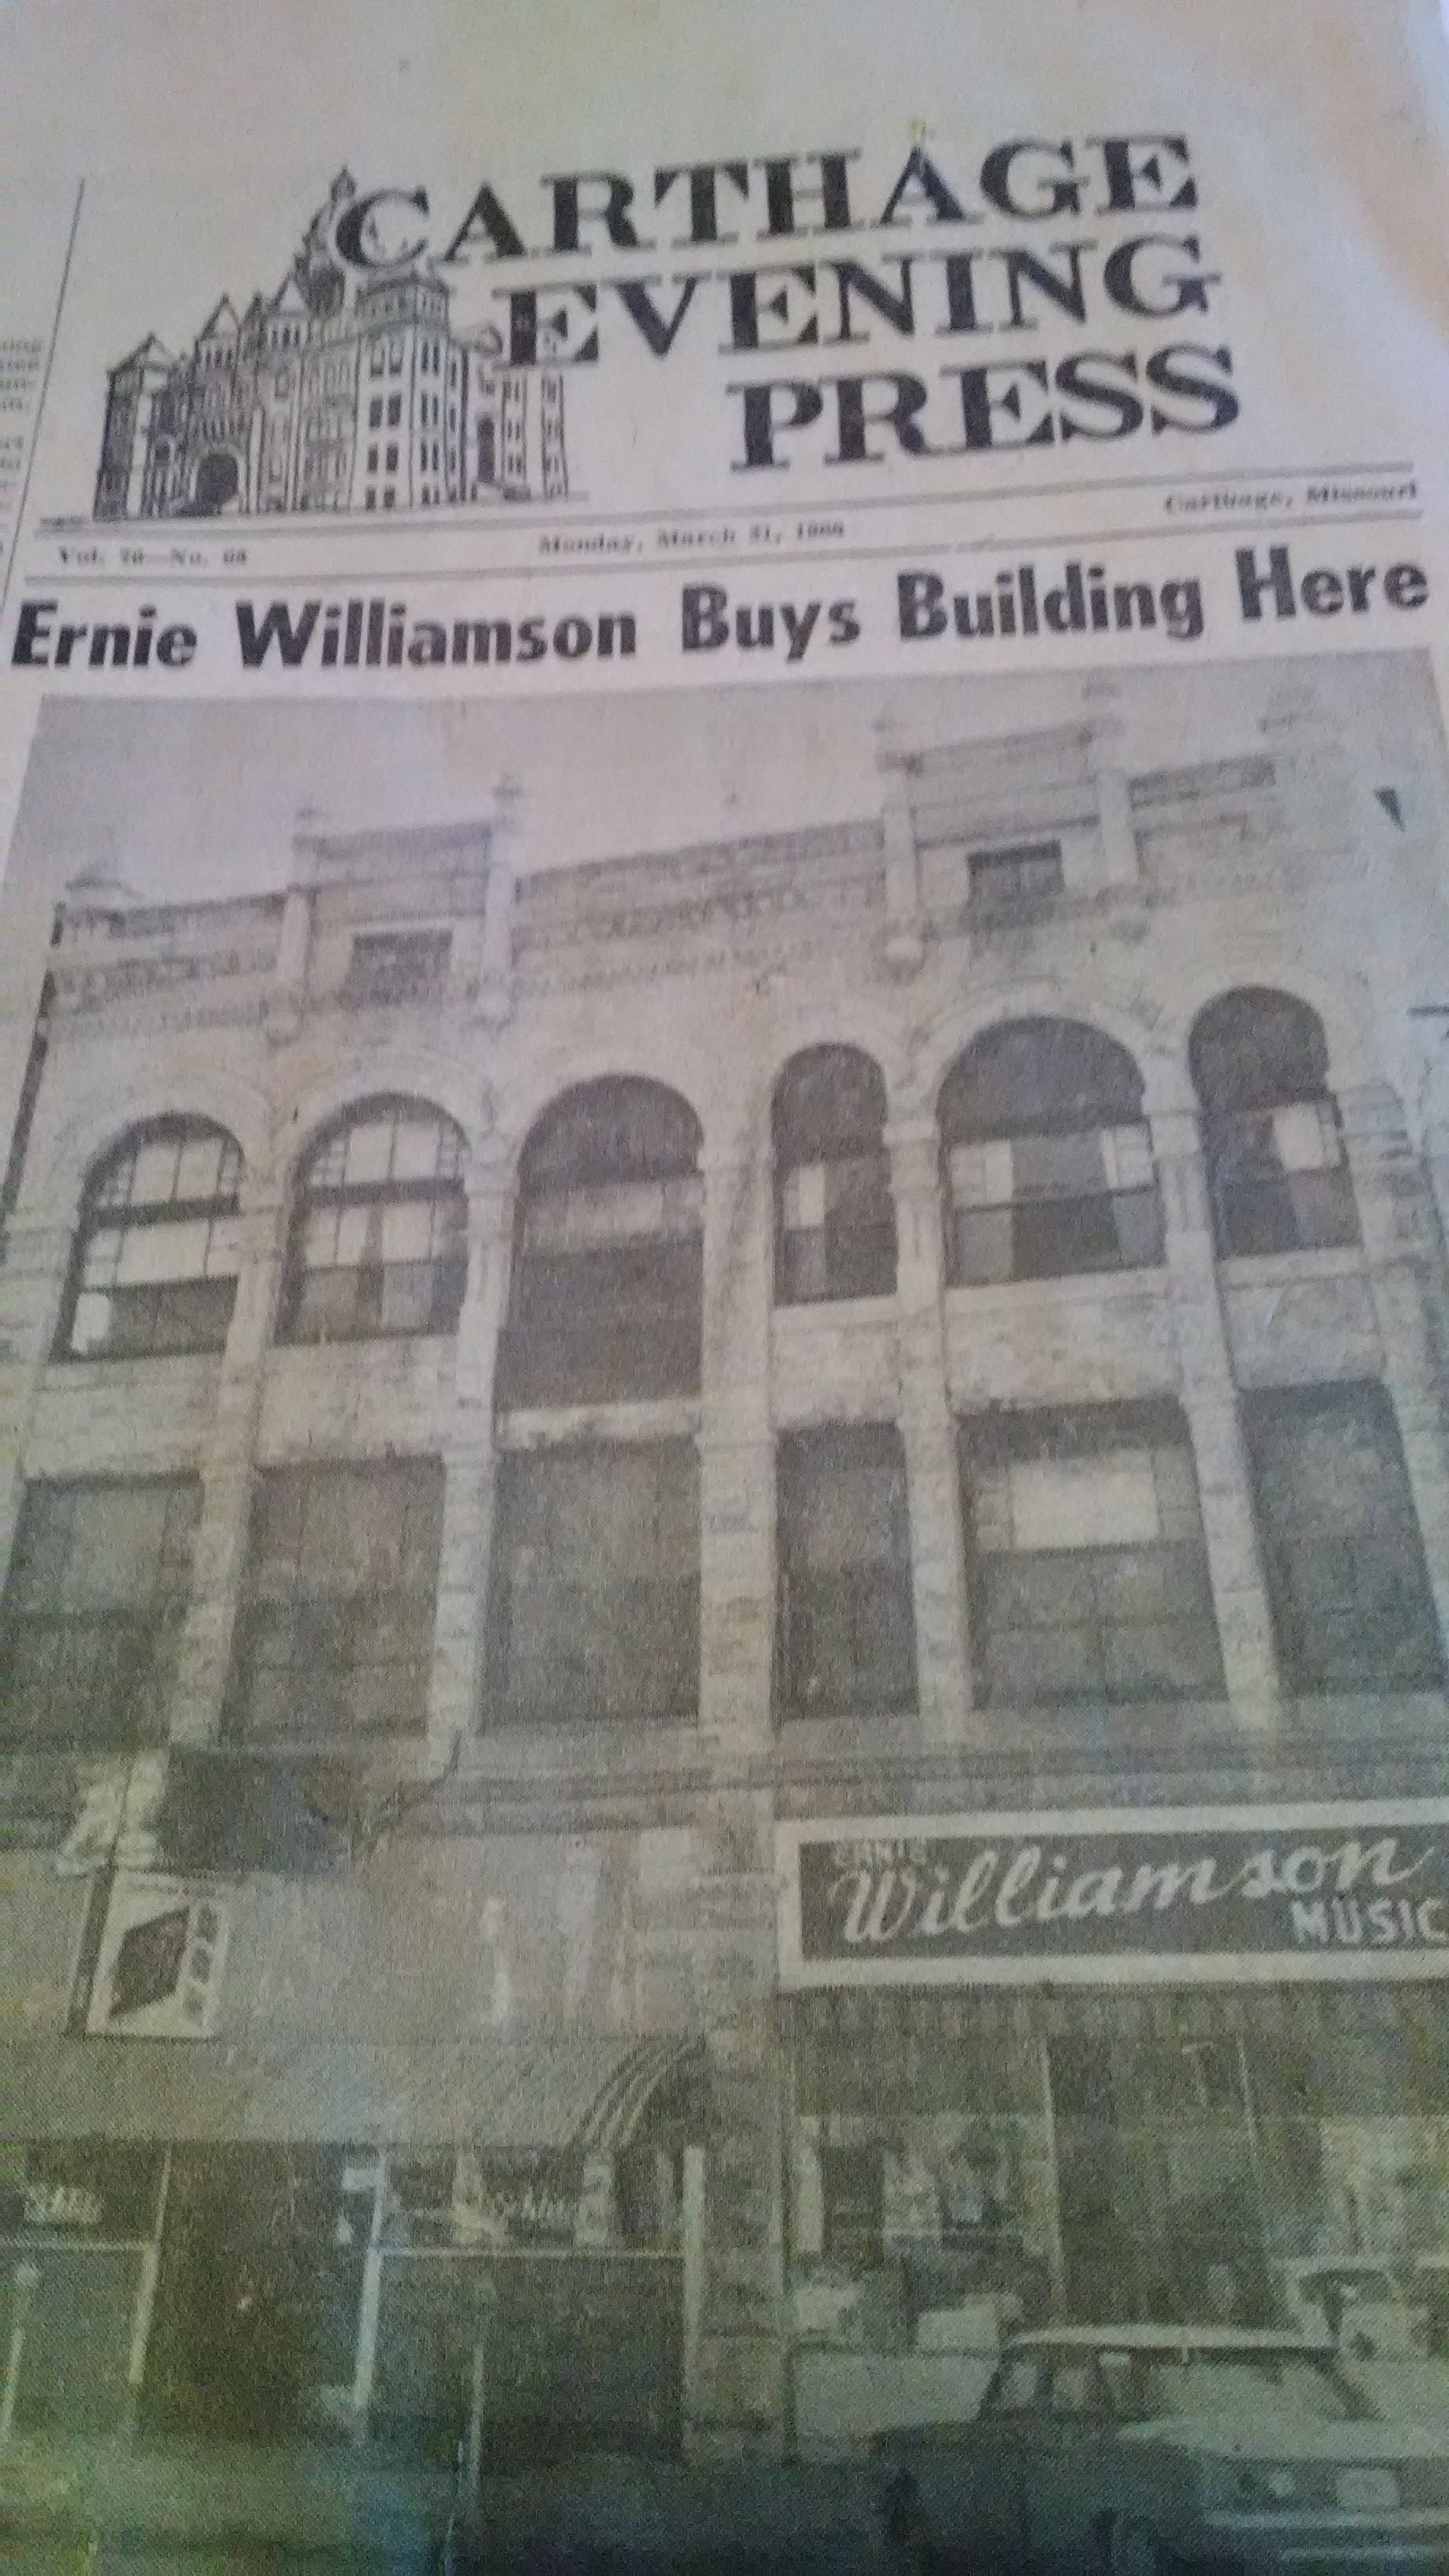 1960 Carthage Evening Press photo of Garland-Myers building (used with permission; footnote #1 above).